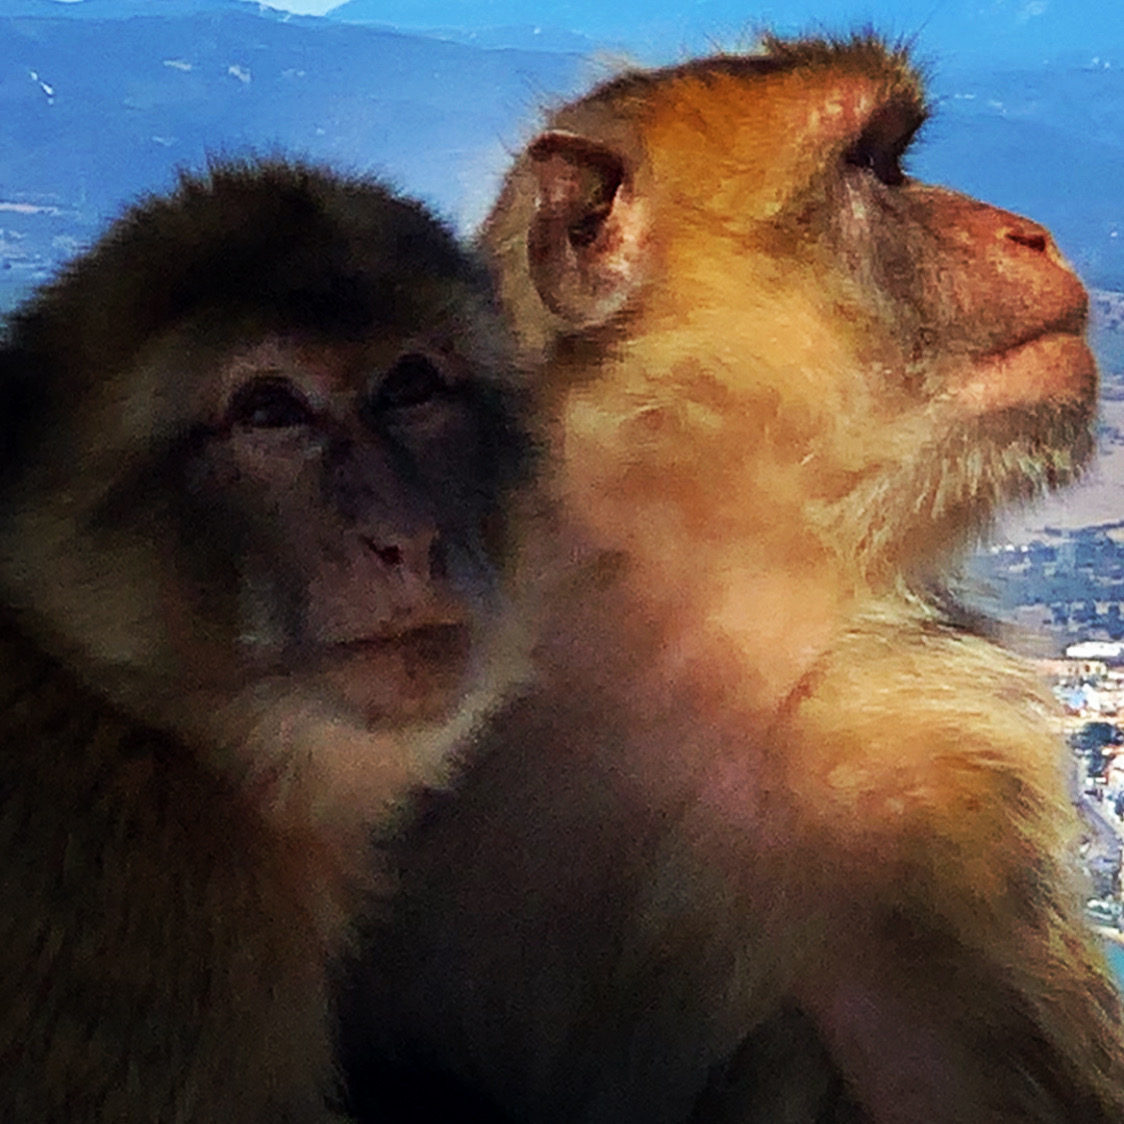 Gibraltar Barbery Monkeys